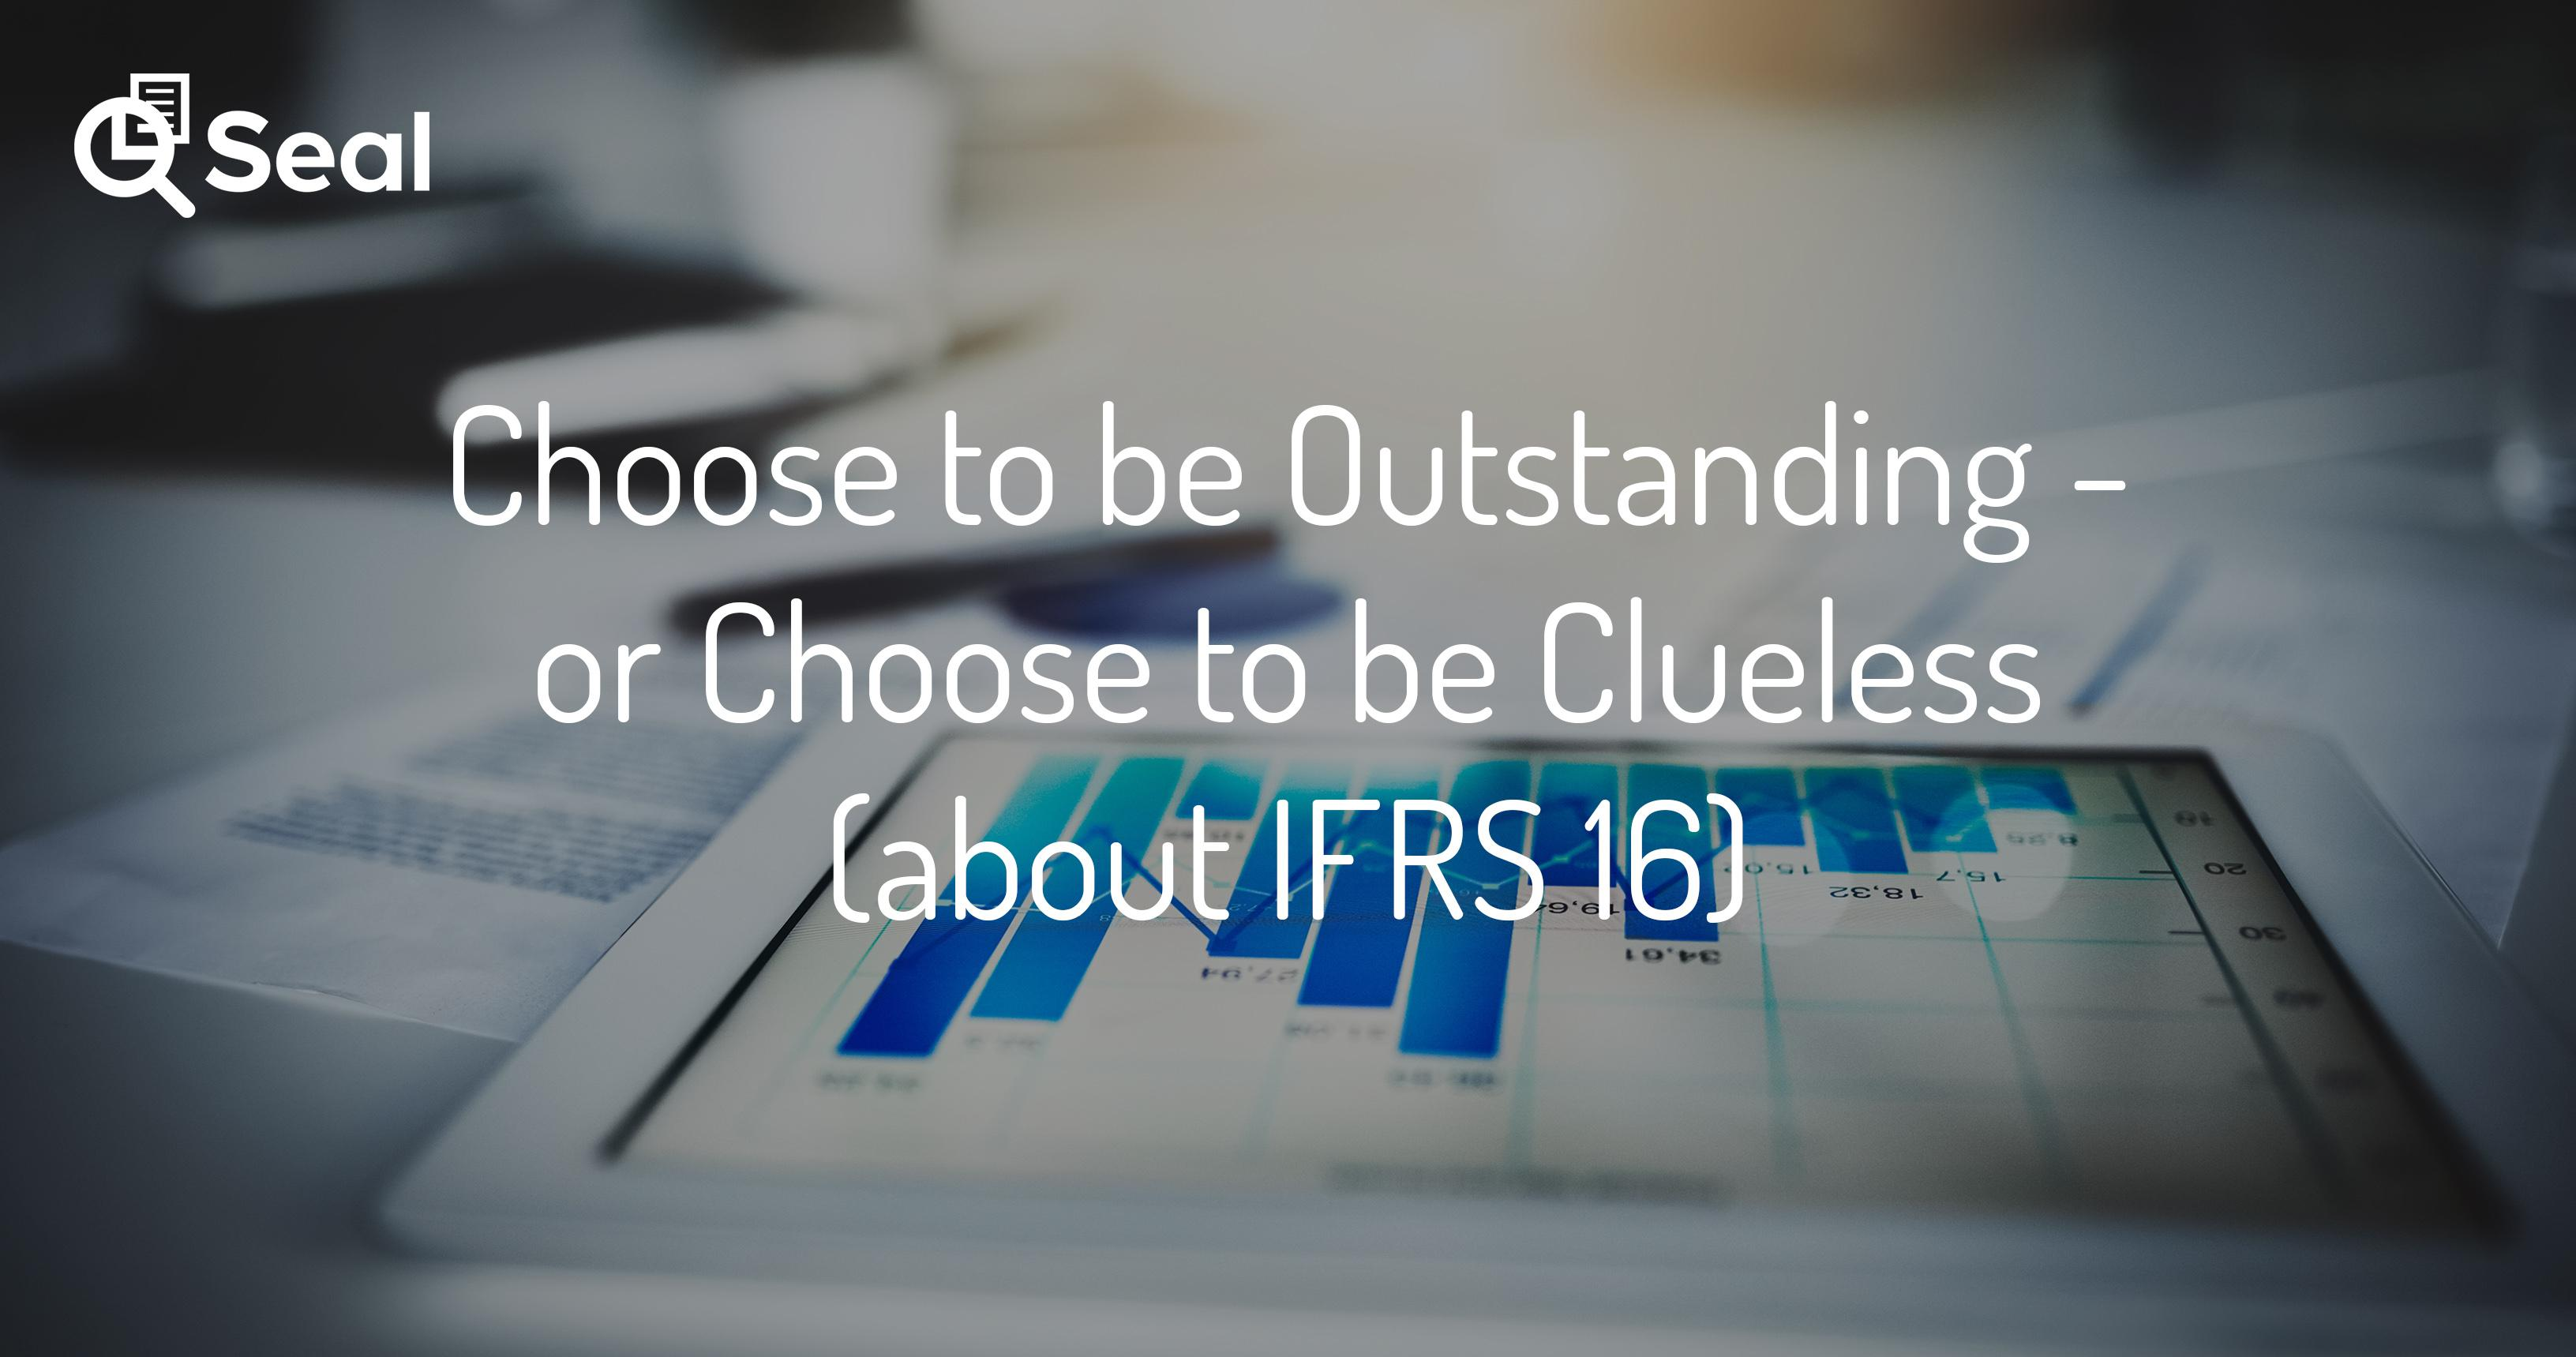 Choose to be Outstanding – or Choose to be Clueless (about IFRS 16)